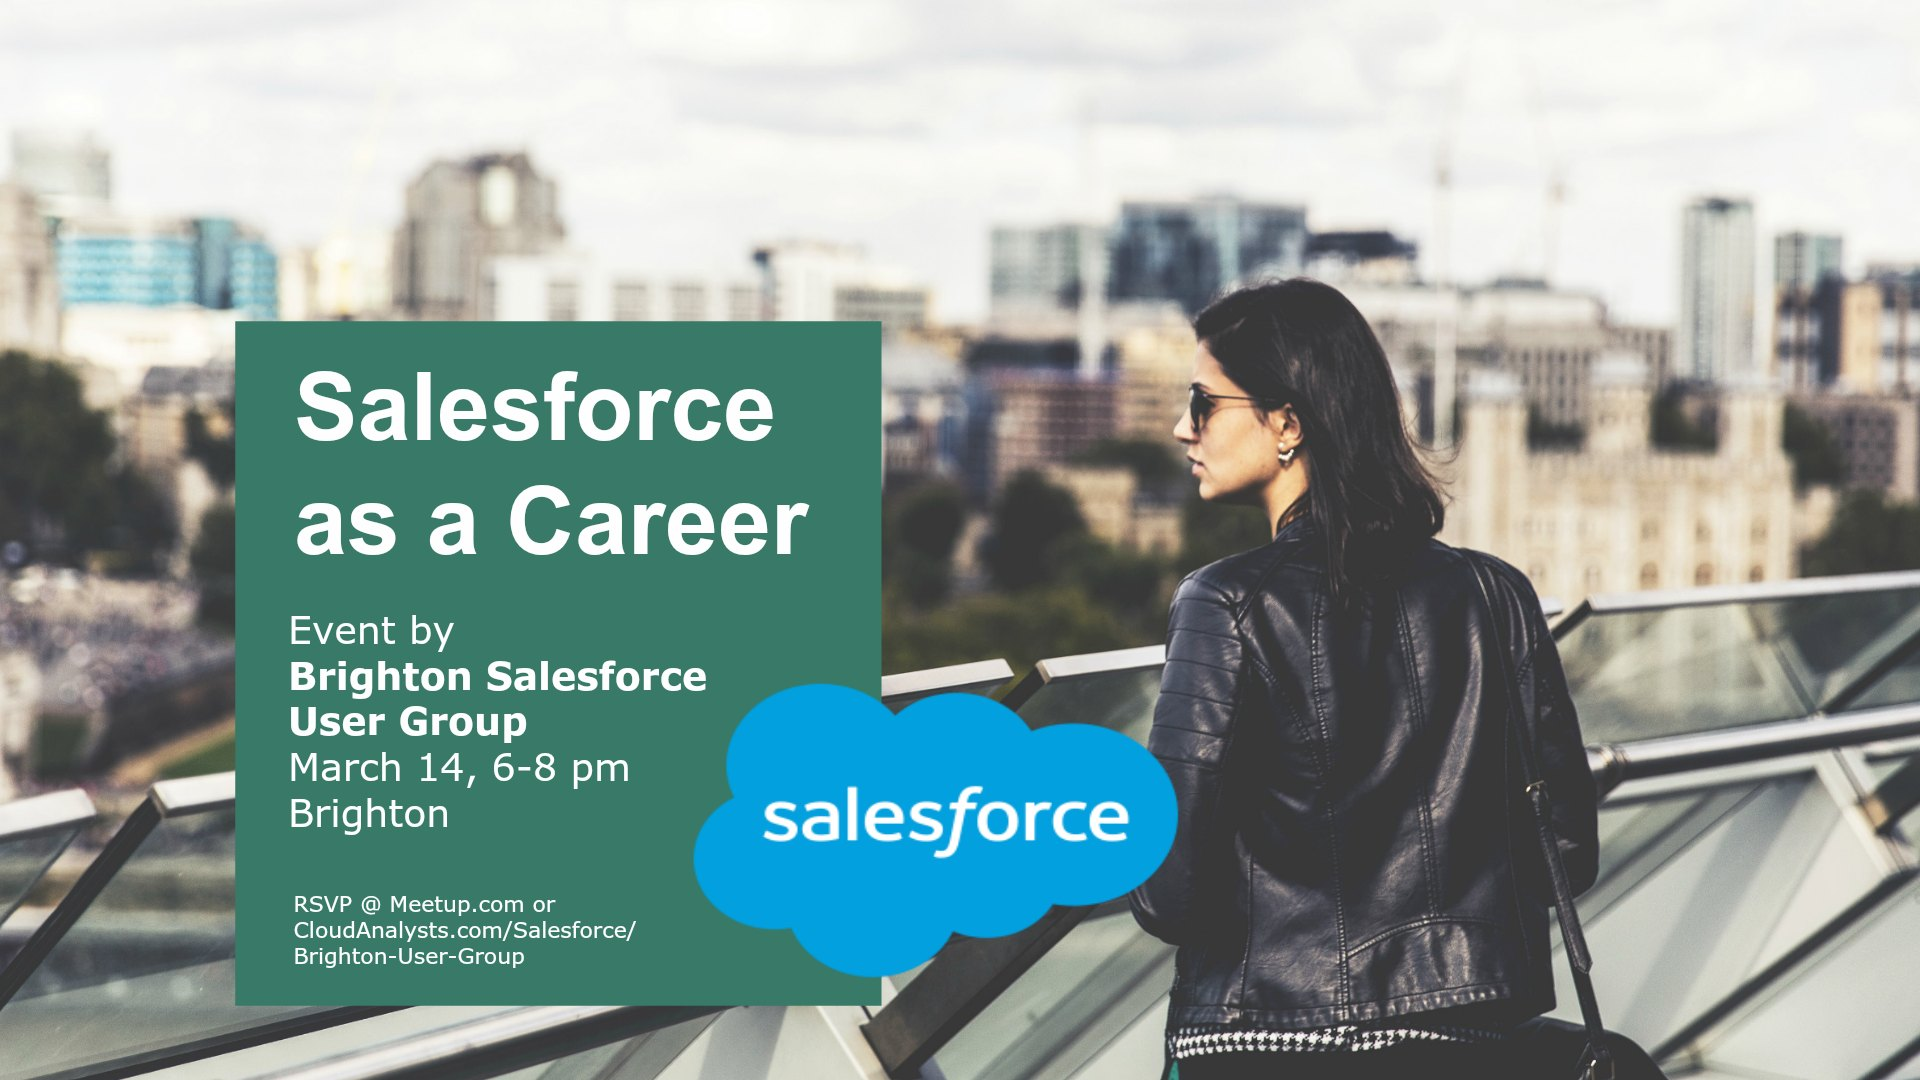 Salesforce as a career - CloudAnalysts